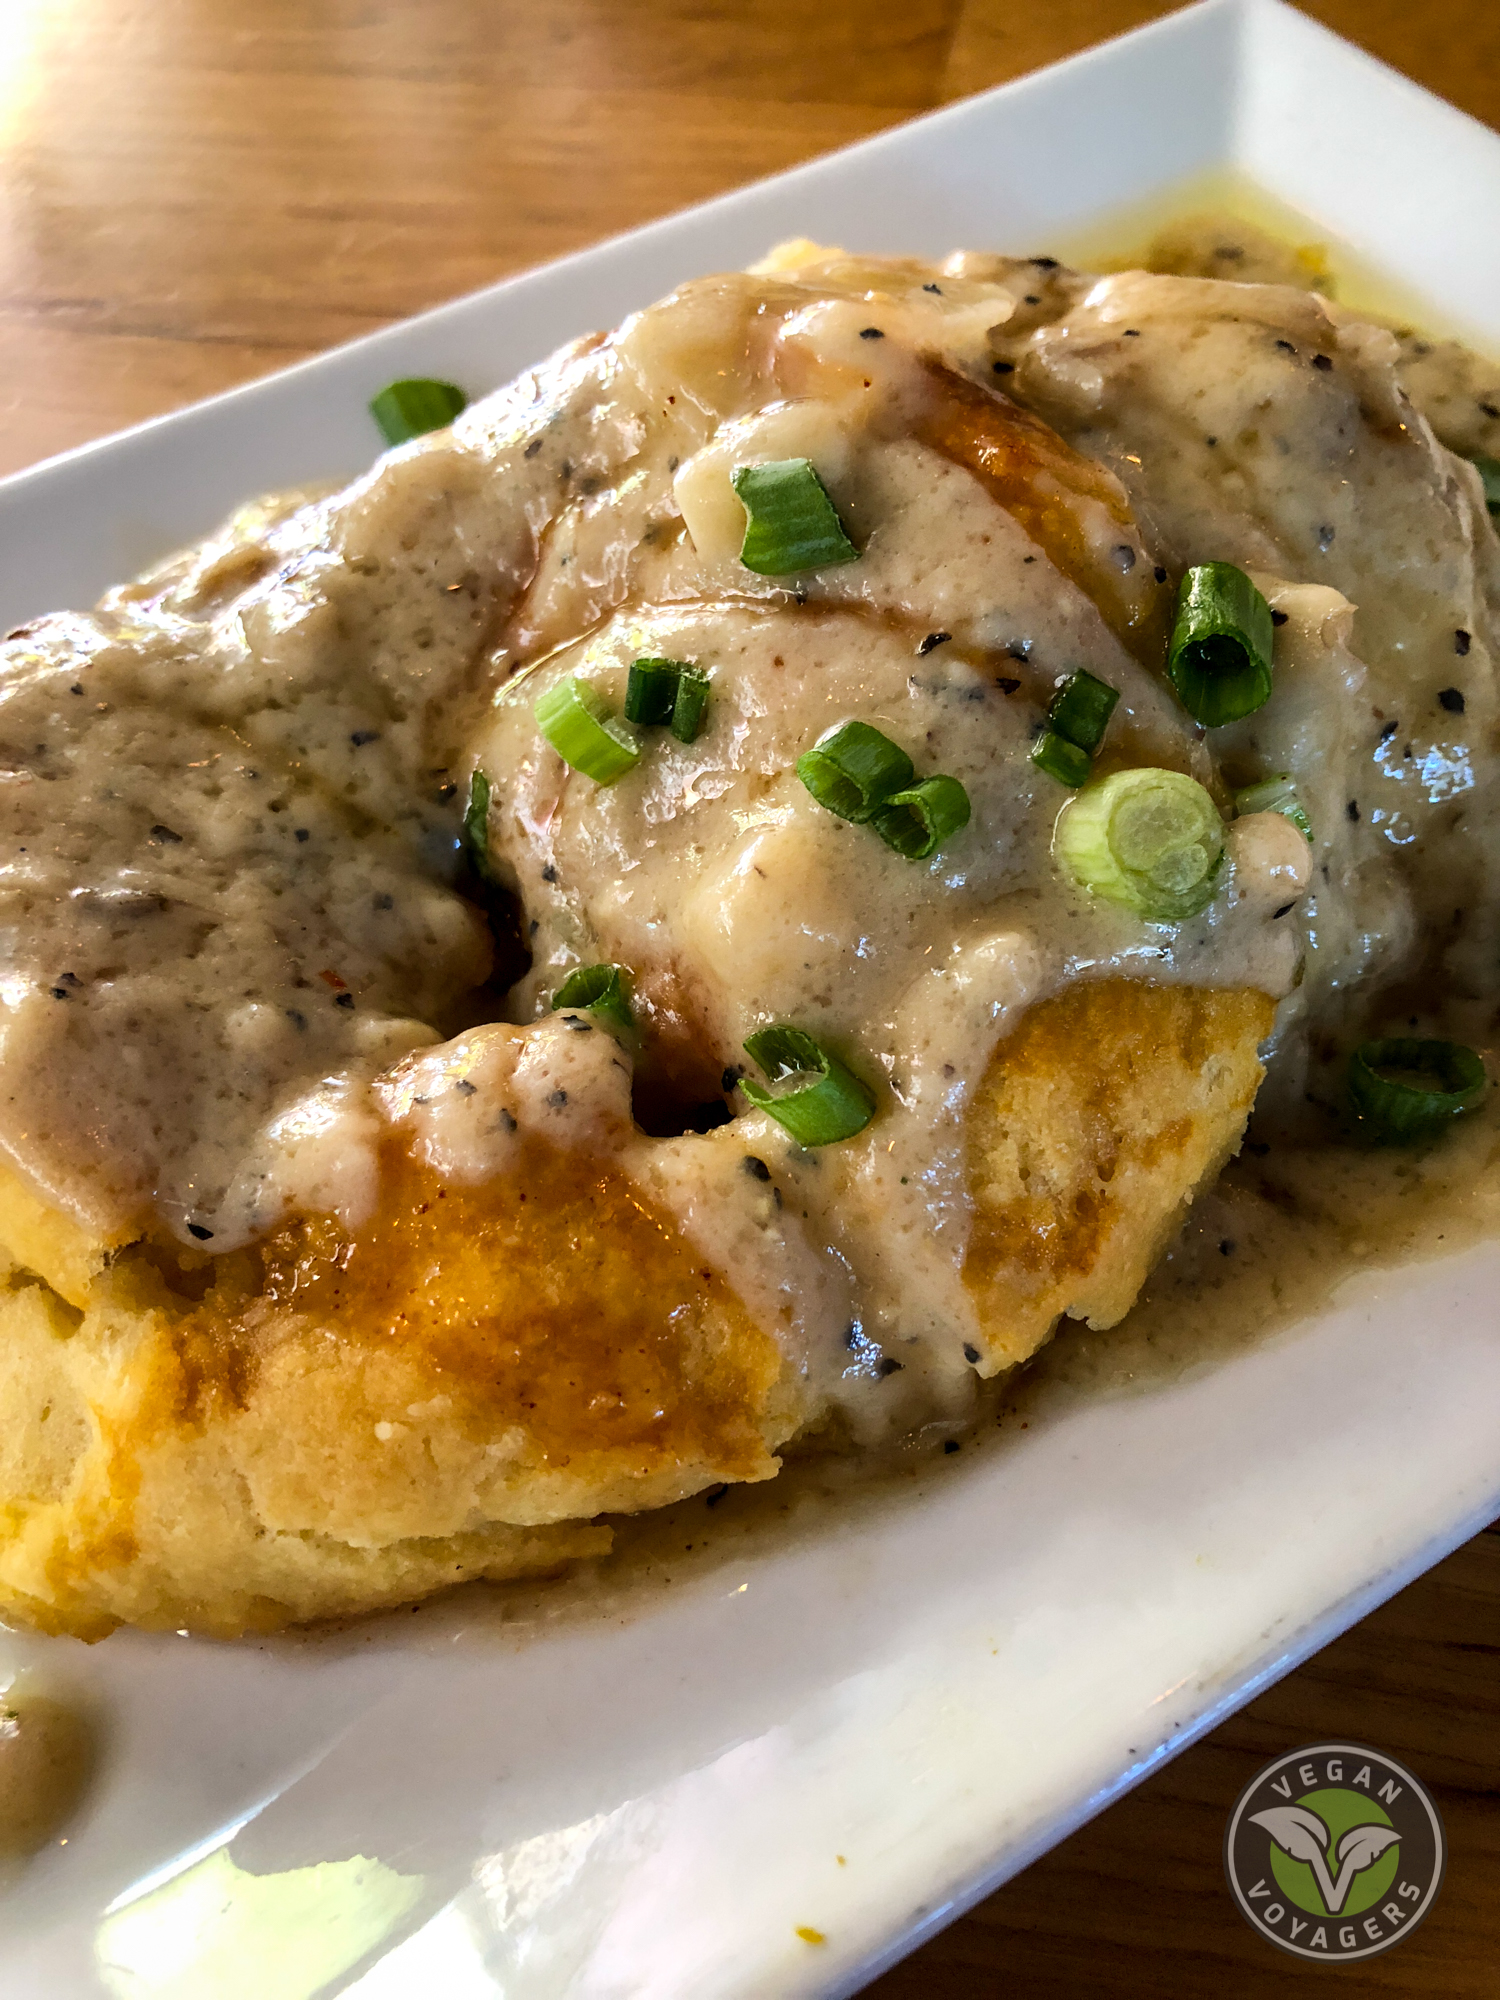 Vegan biscuits and gravy | Watercourse Foods, Denver, CO